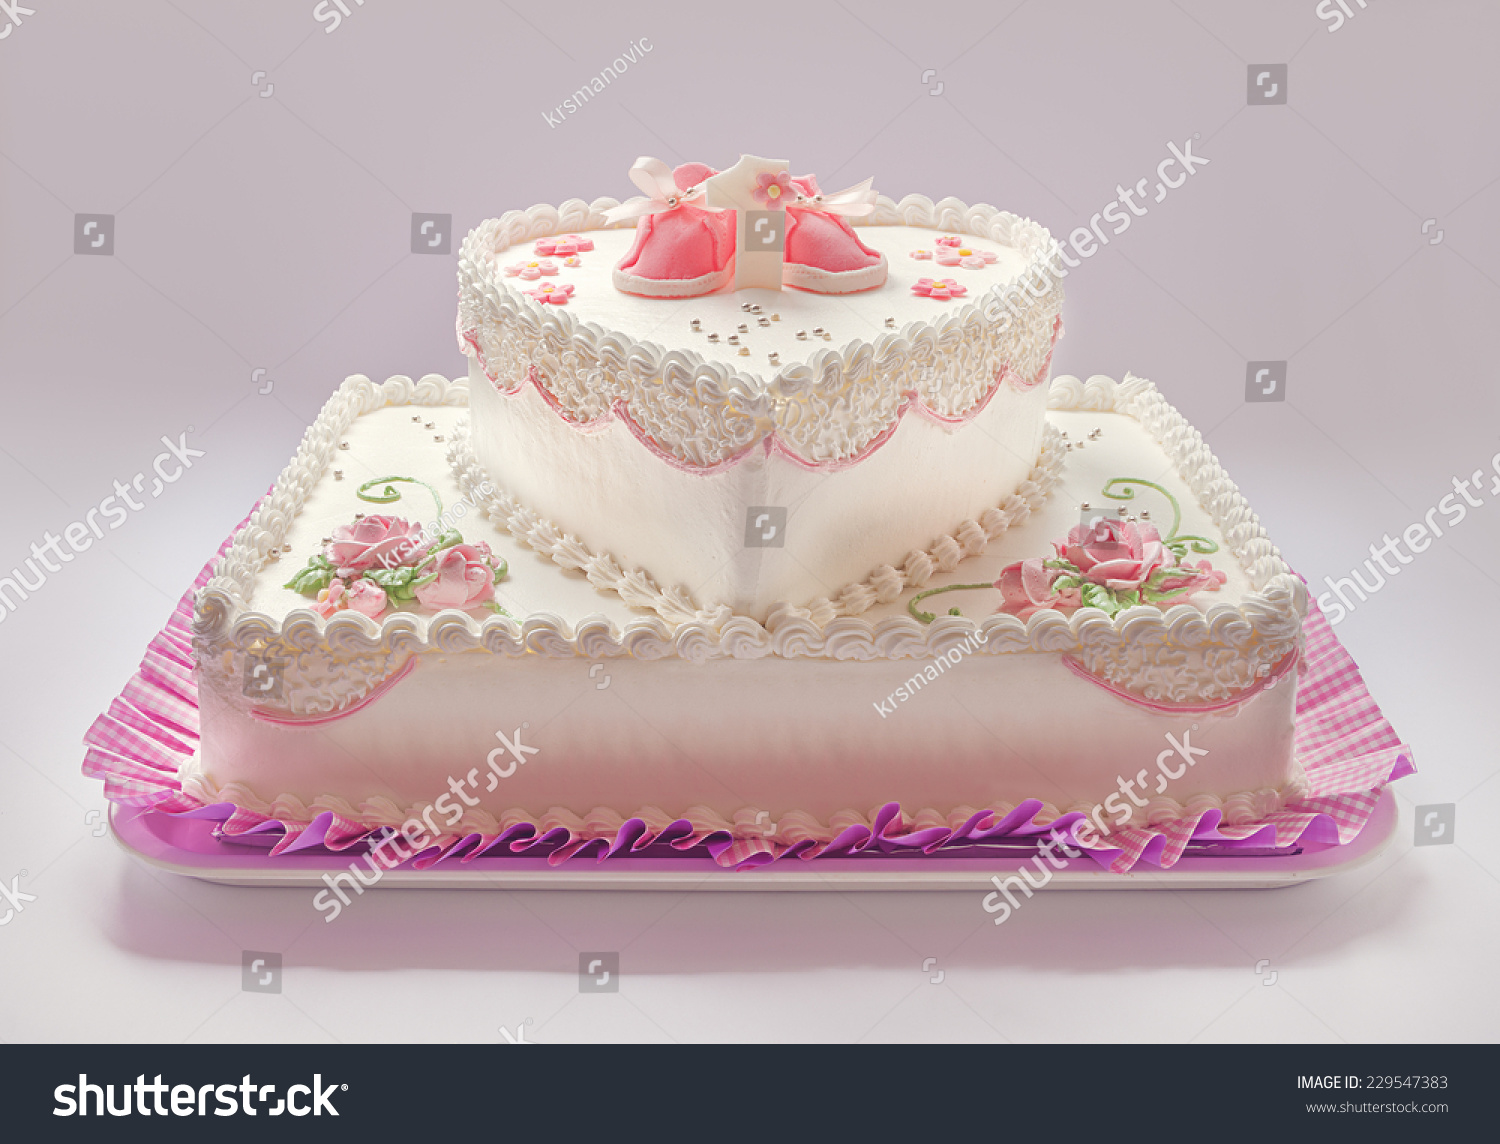 Details Of A Birthday Cake For Baby Girl Number One And Sweet Sugar